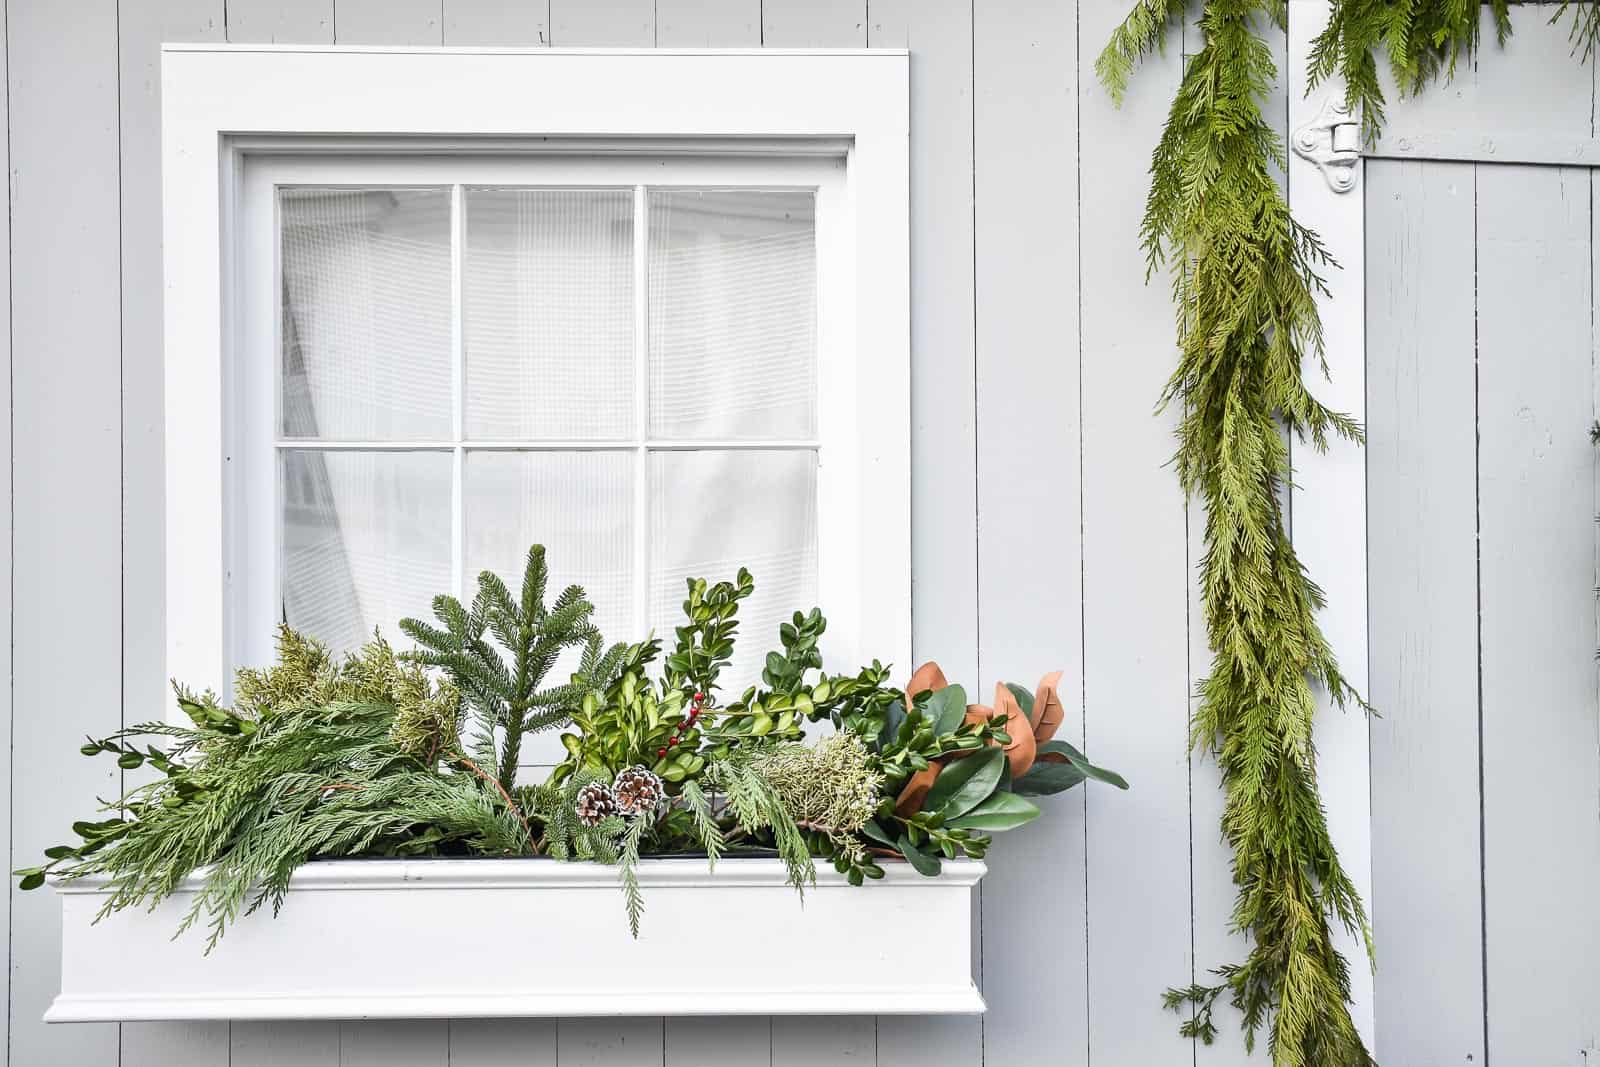 greenery in window boxes